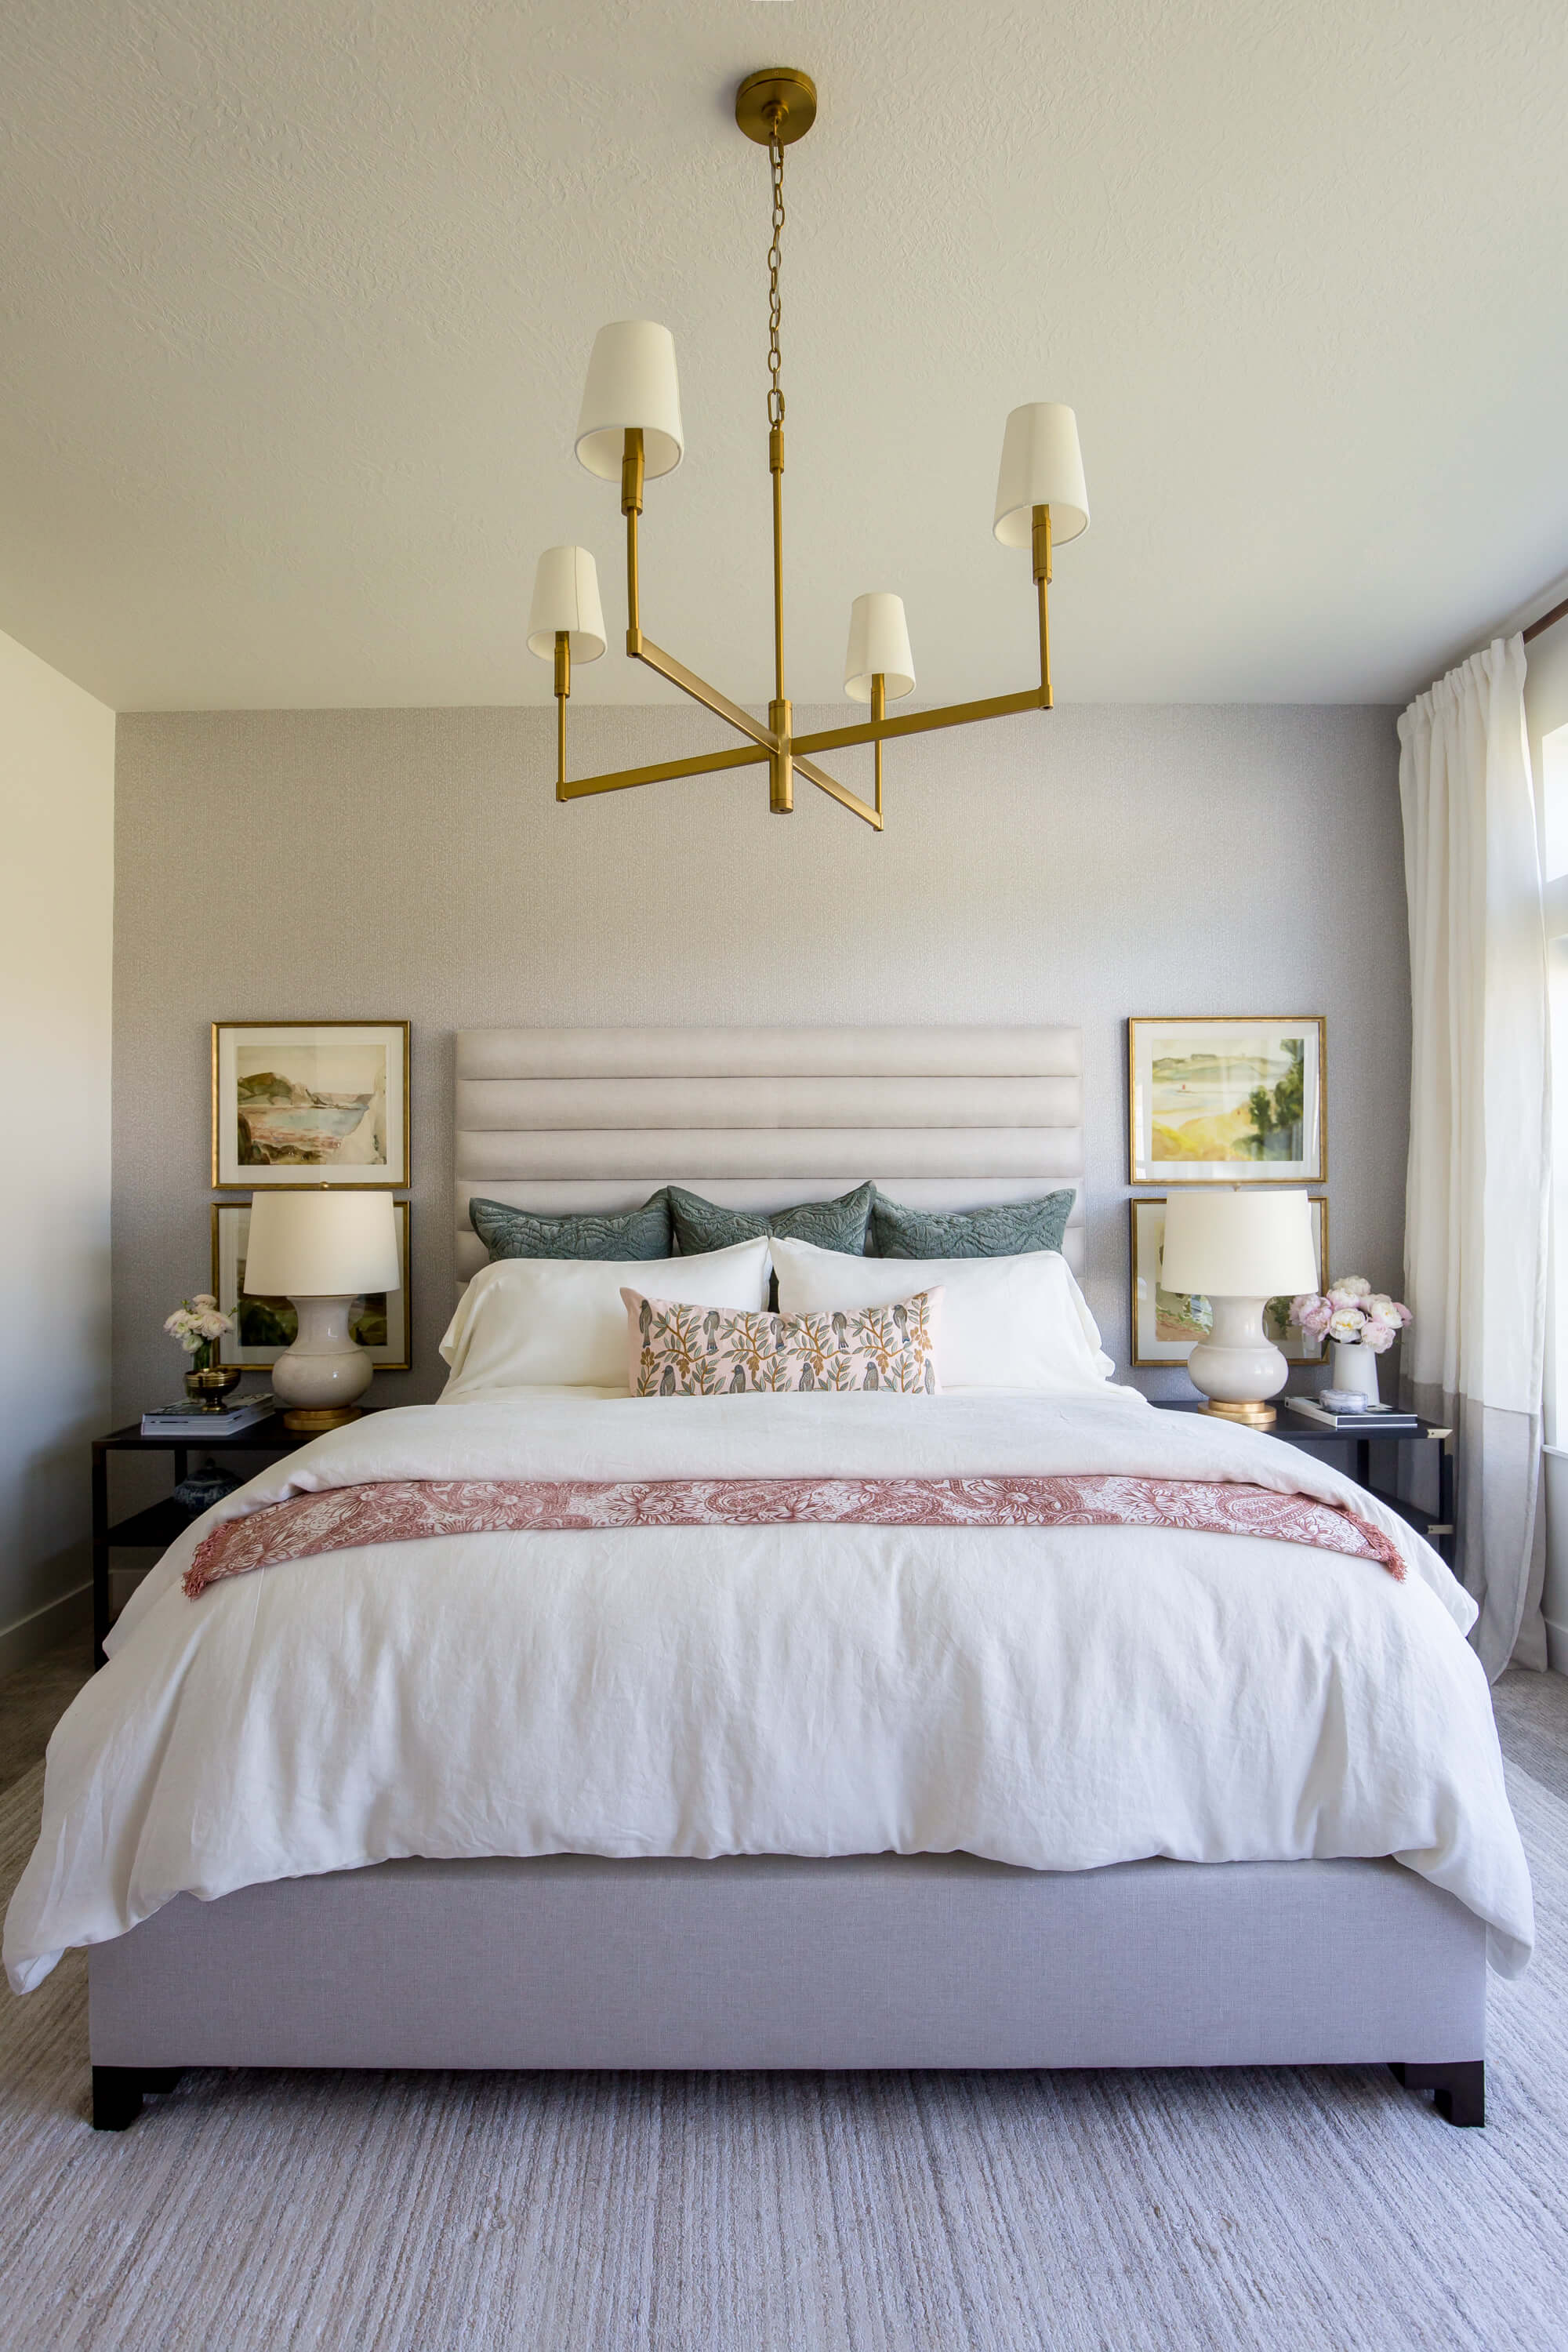 bedroom interior design with bedspread & luxury curtains